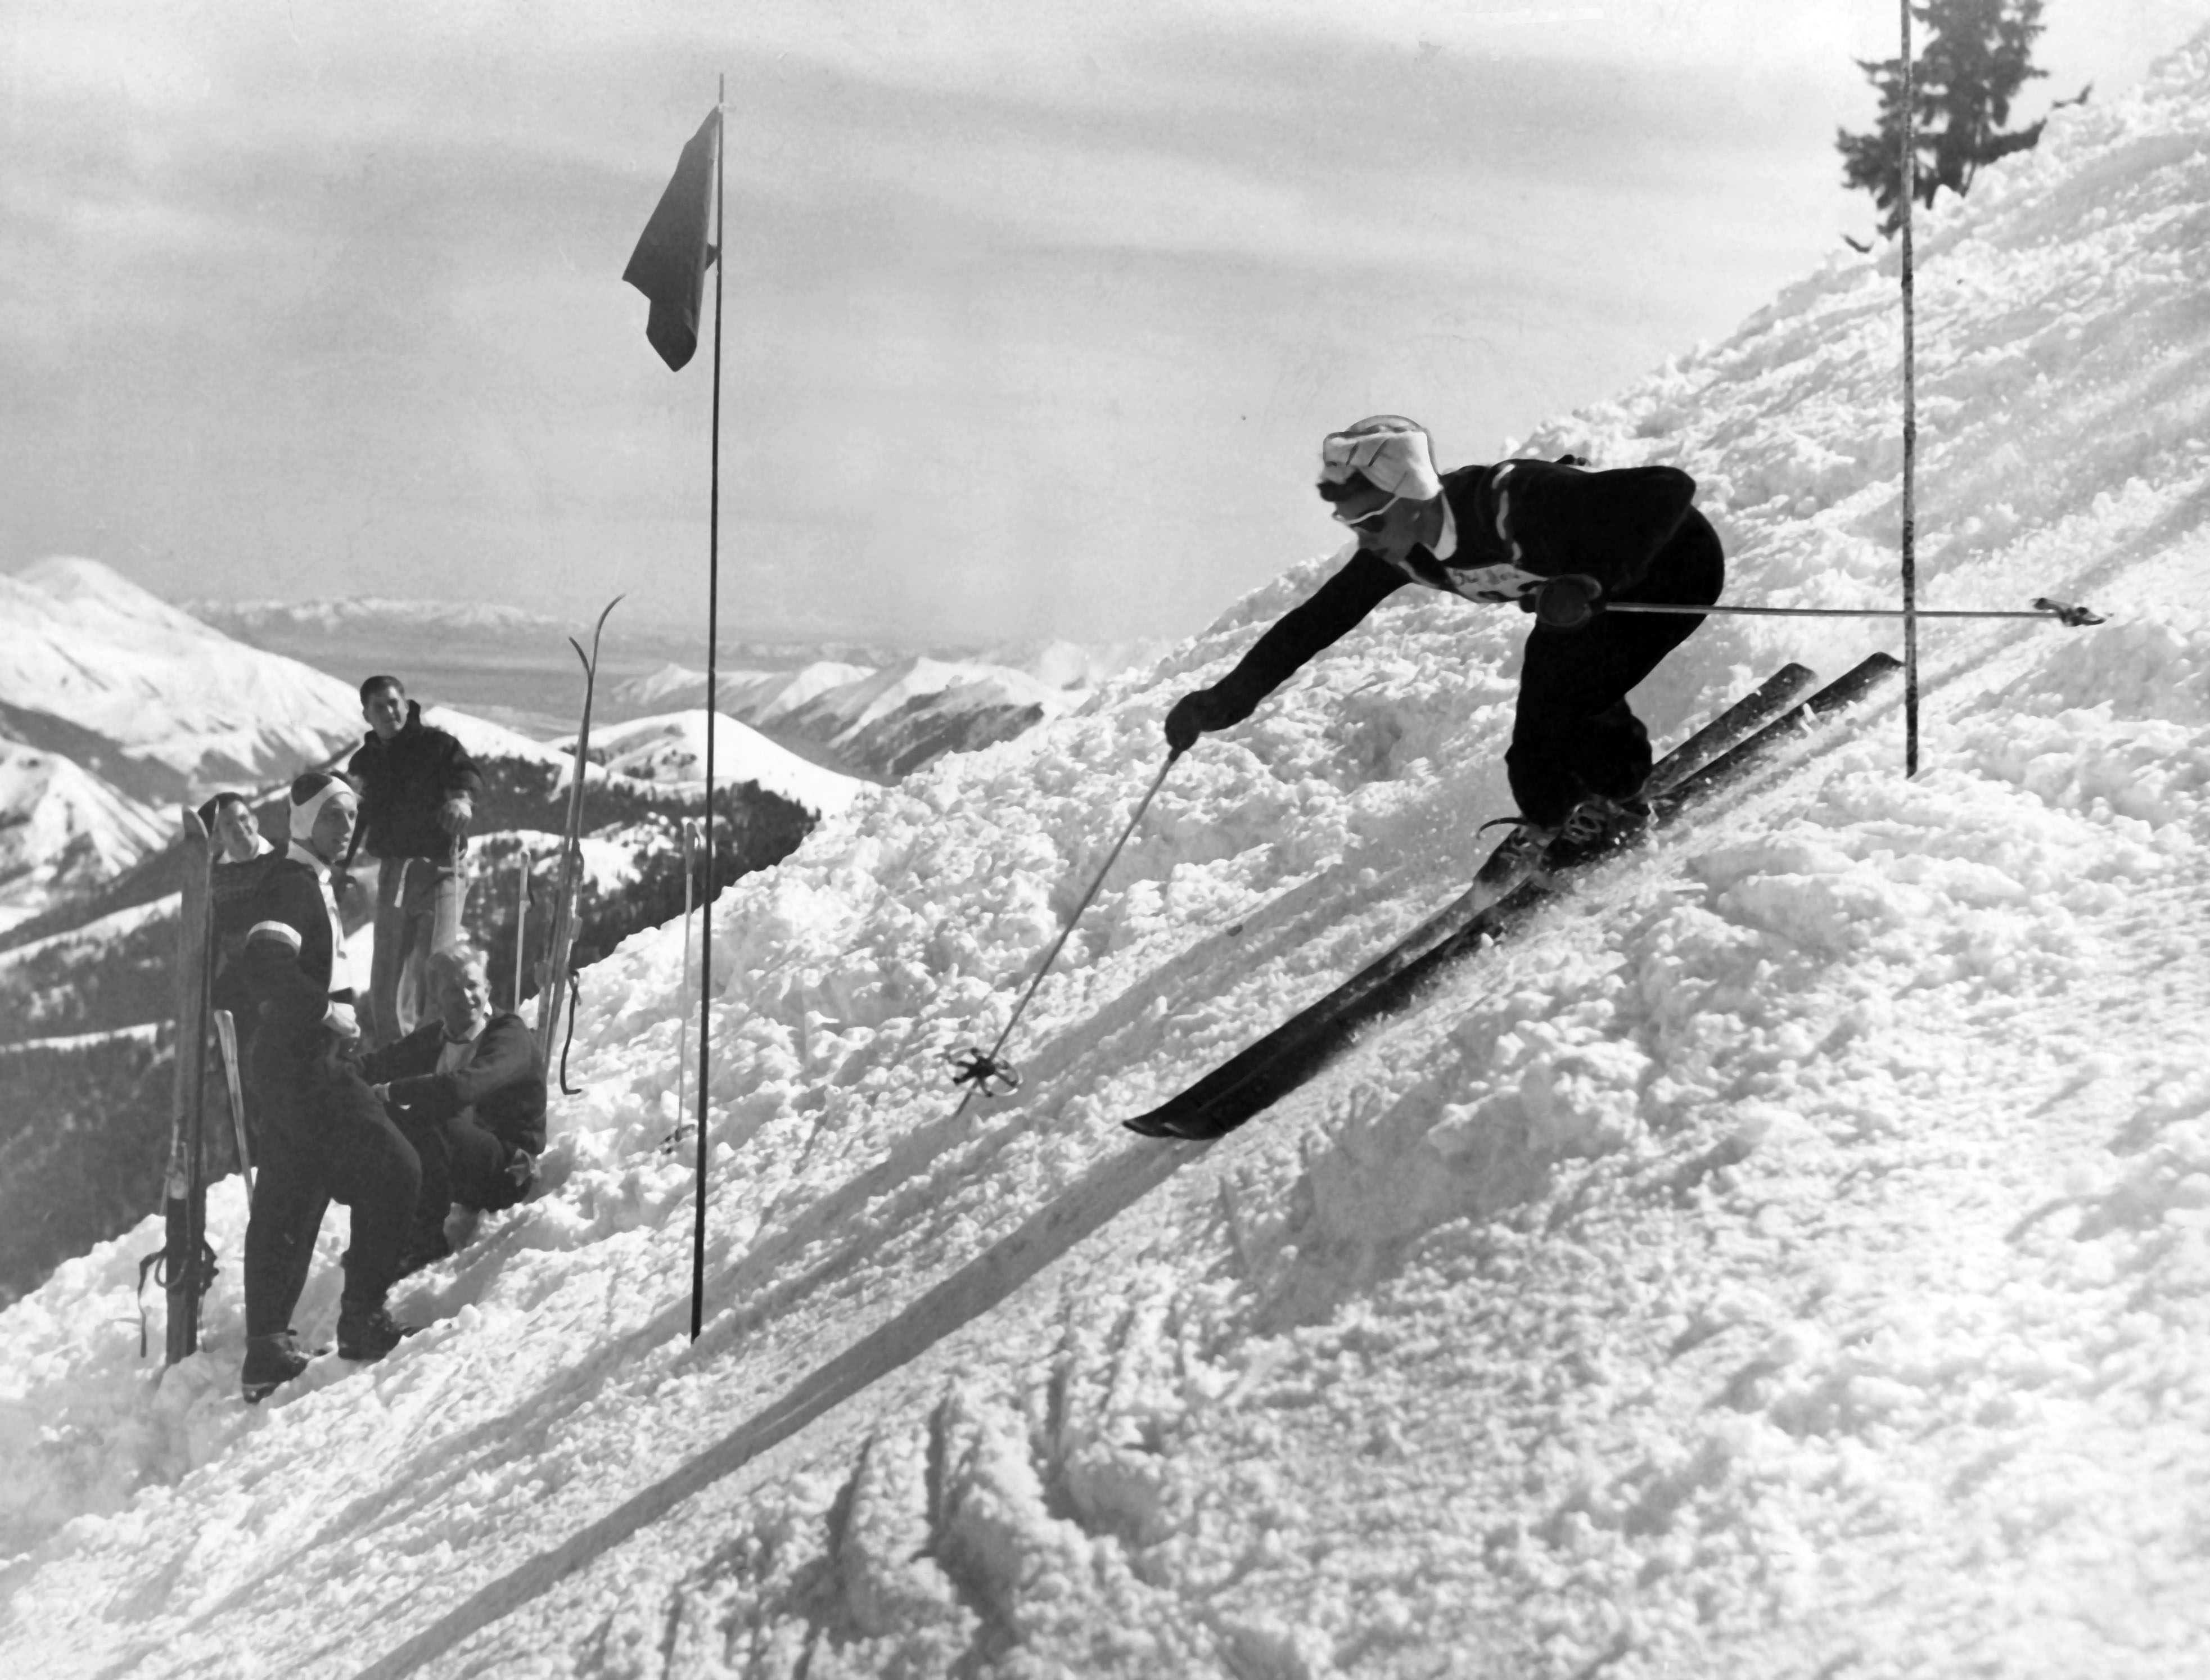 A woman racing around a flag, while others watching, race course at a Utah ski resort, 1940s-1950s; Suzy Rytting Collection